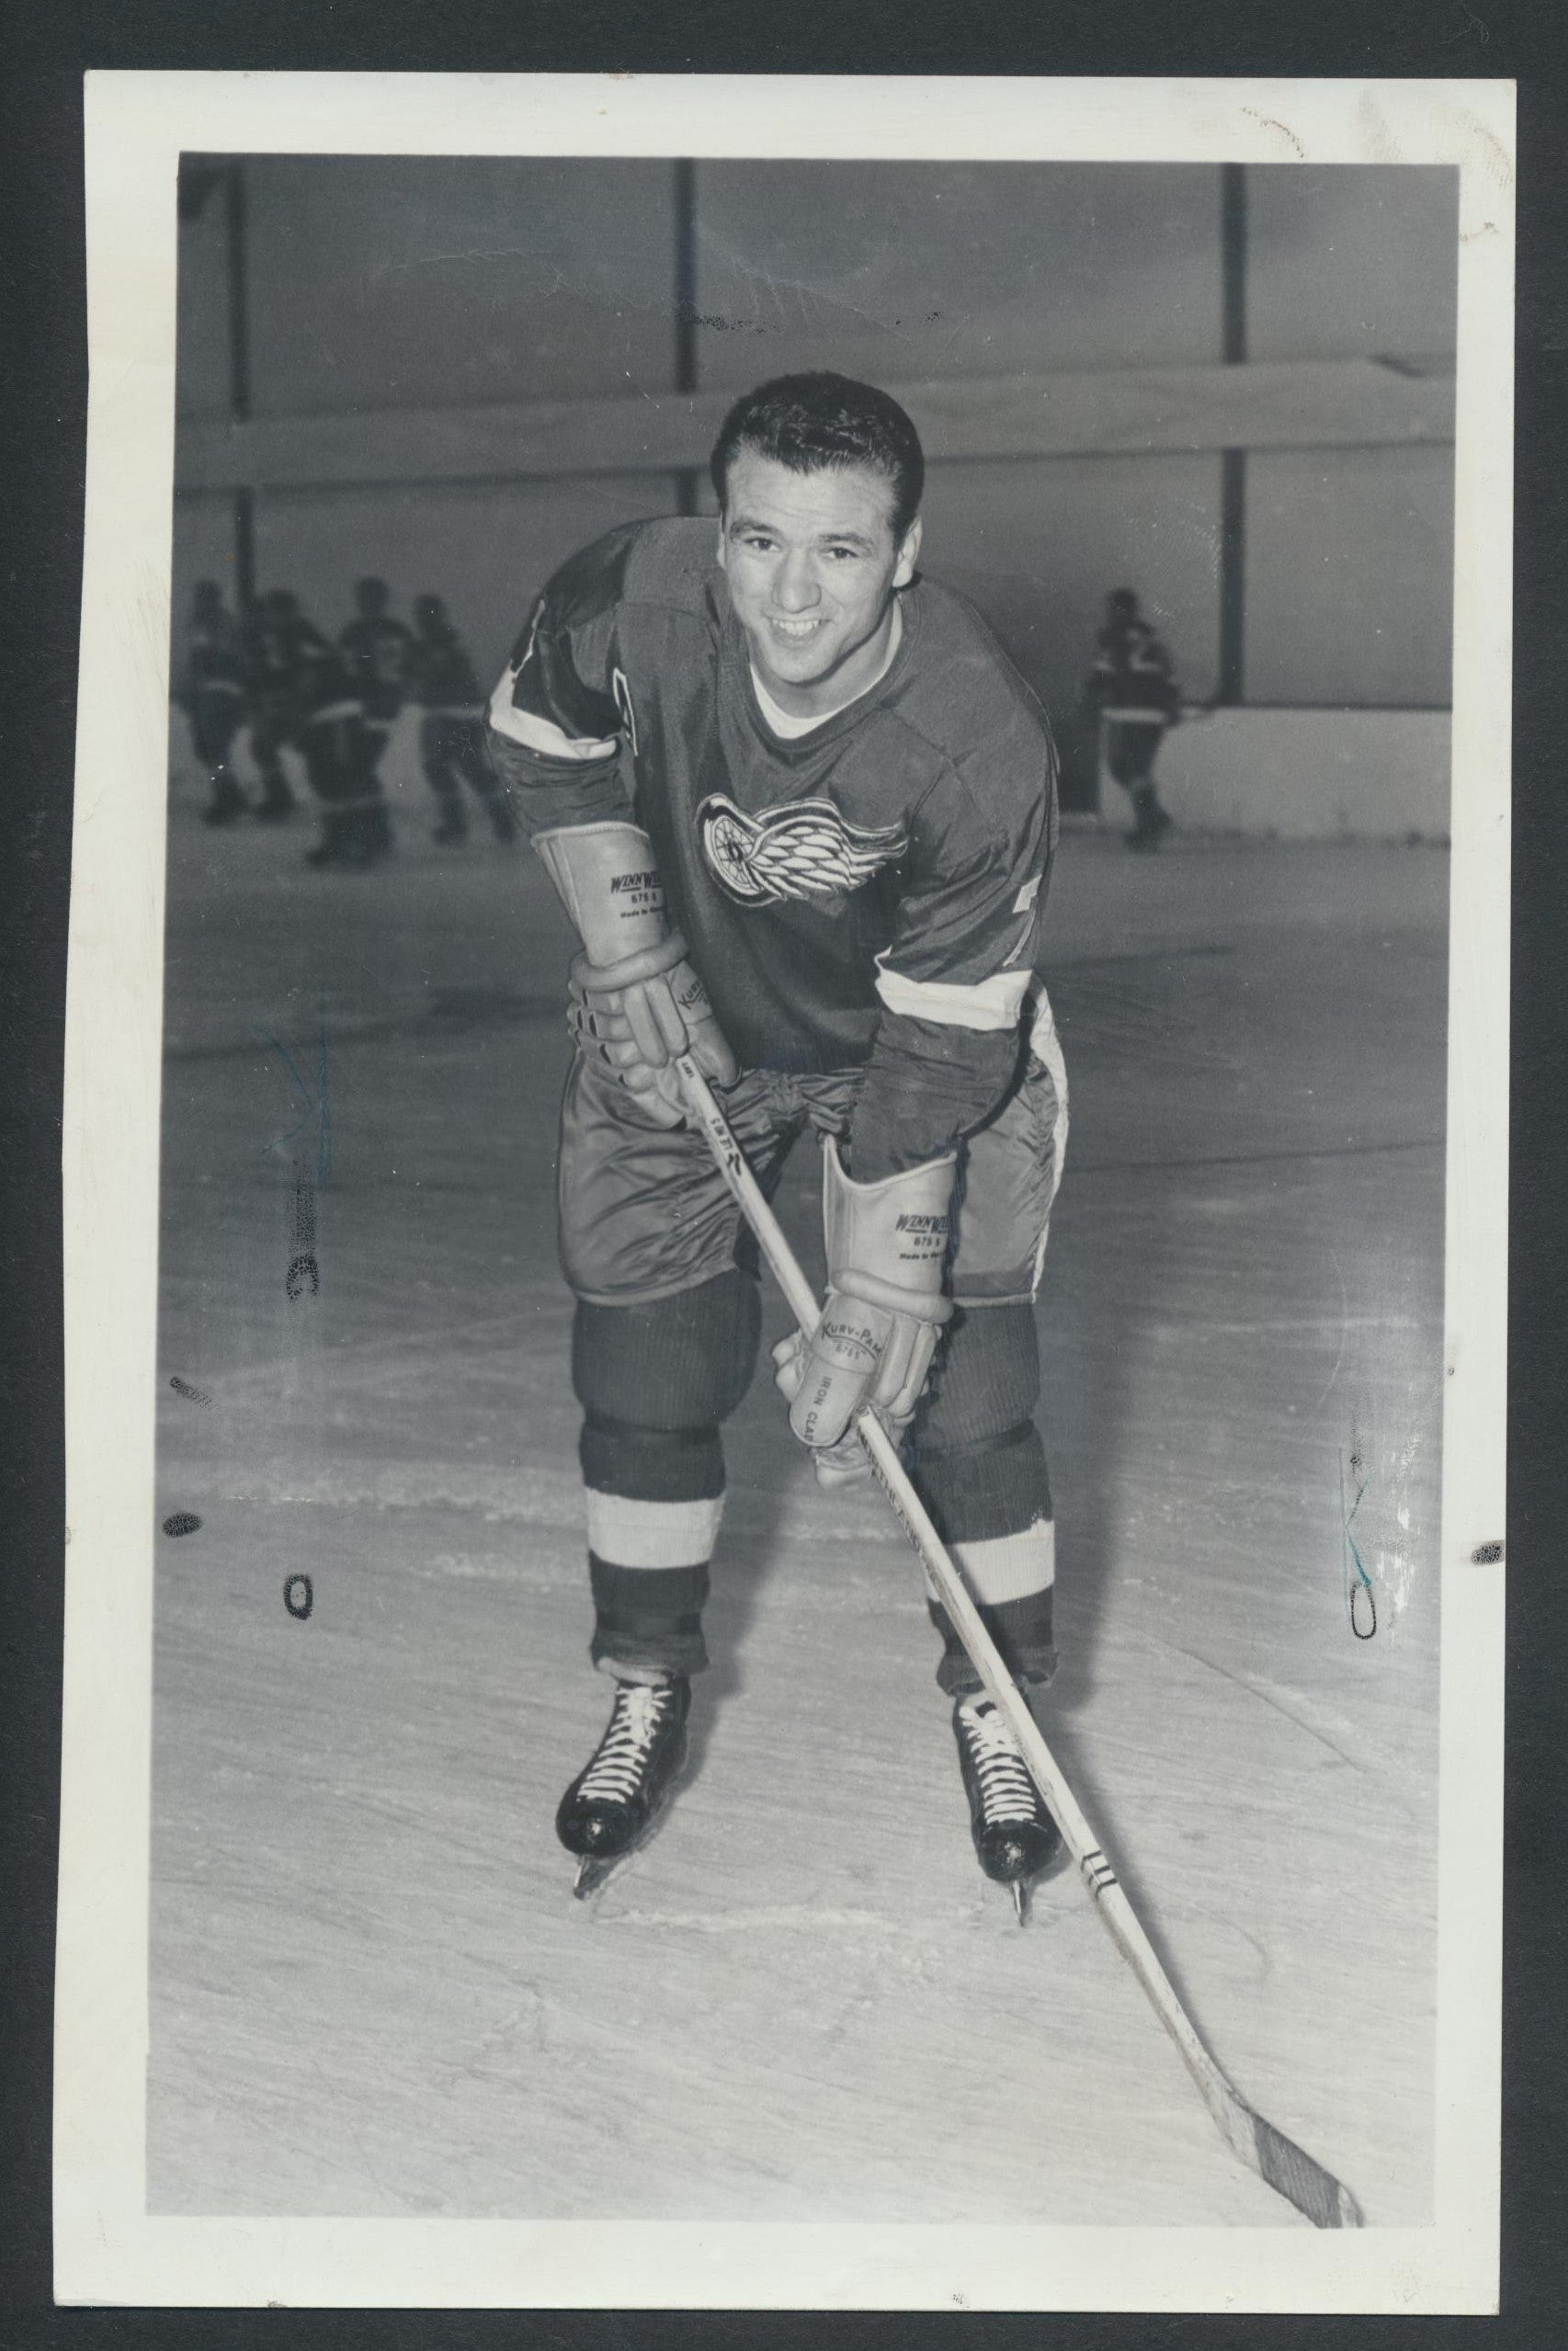 Original Norm Ullman HOF -Detroit Red Wings Press/Wire Photo 1967  Vintage NHL Hockey Pic  News Archives